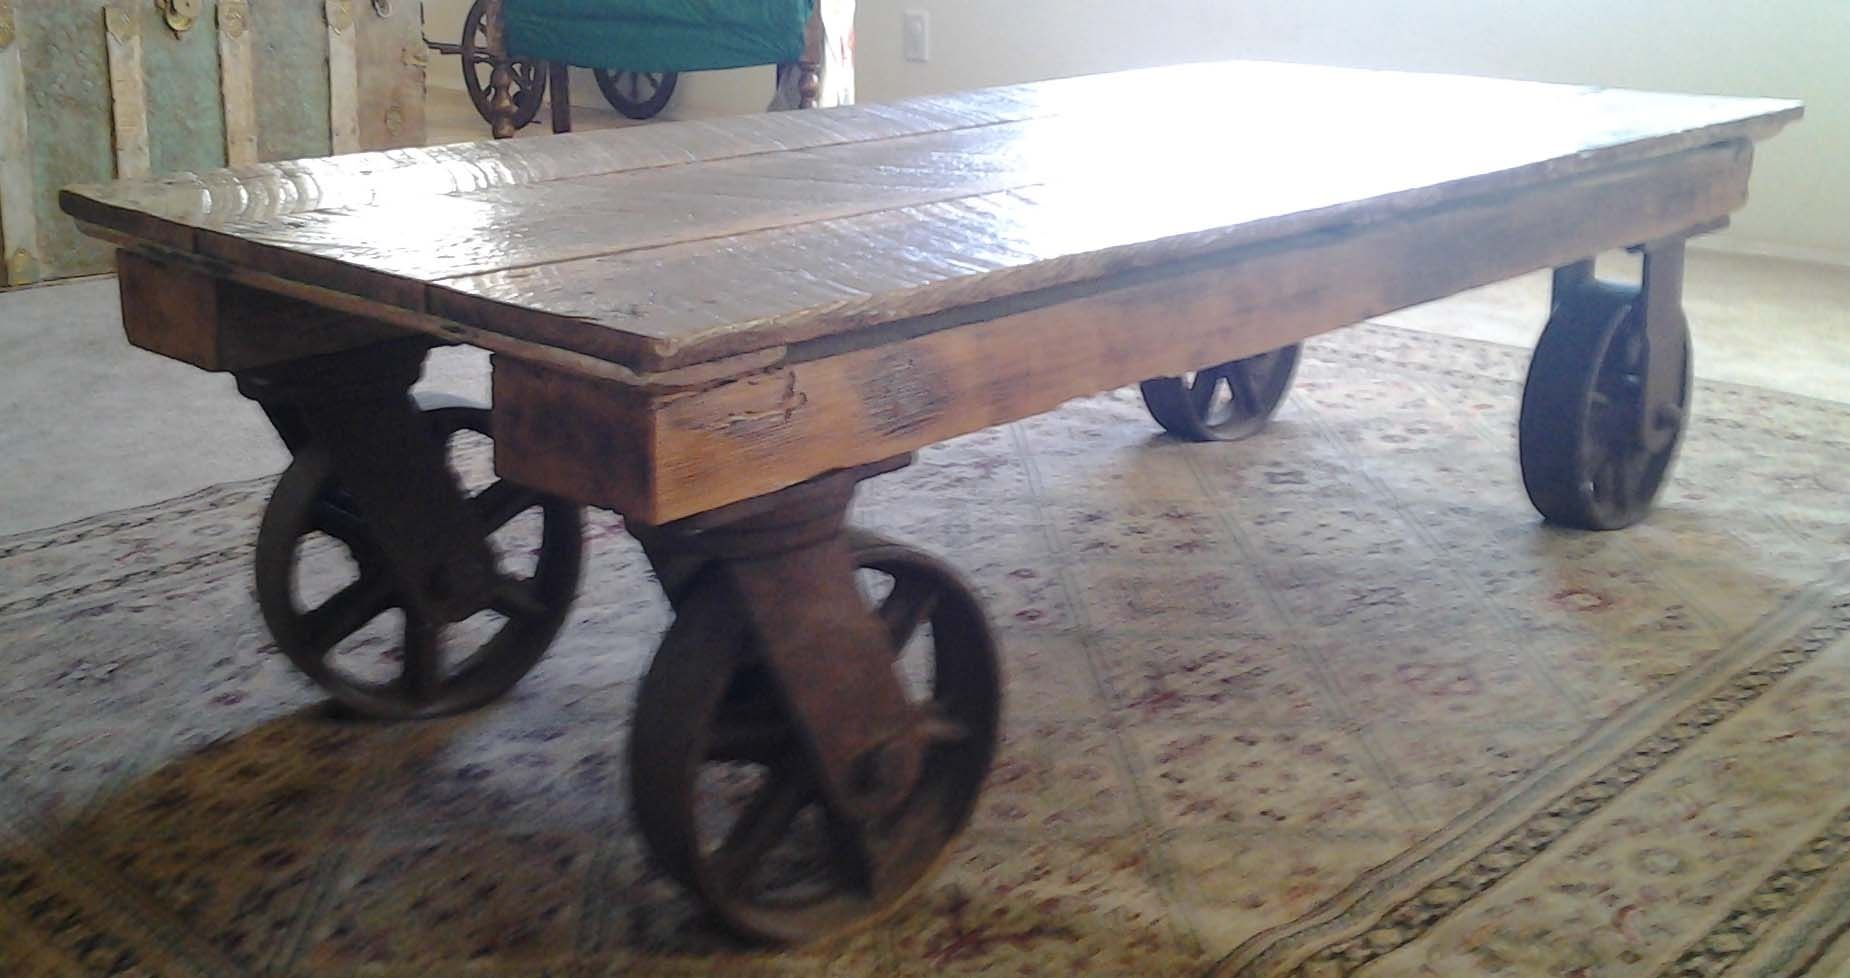 Hand Made Coffee Table With Iron Industrial Wheels By The Farm At Spring Creek